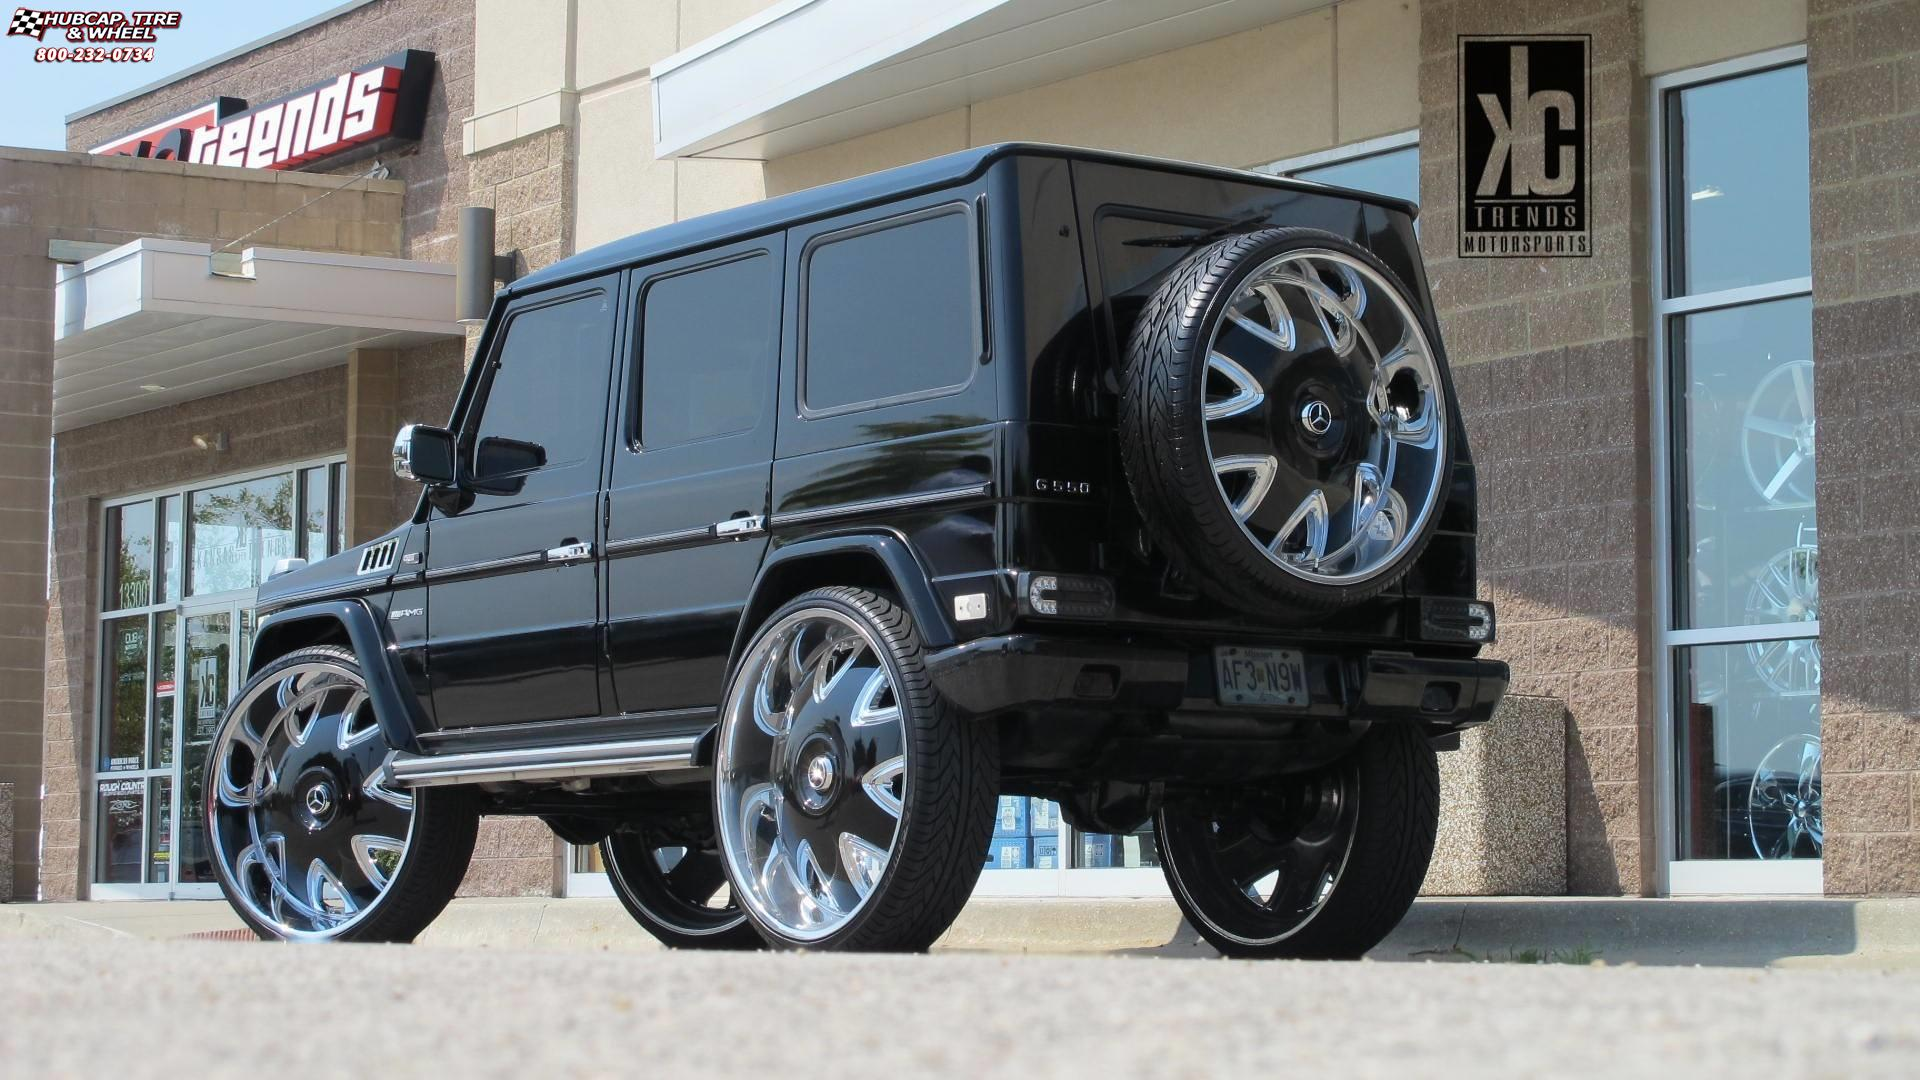 Mercedes-Benz G-Wagon Dub Bandito - S136 Wheels Chrome